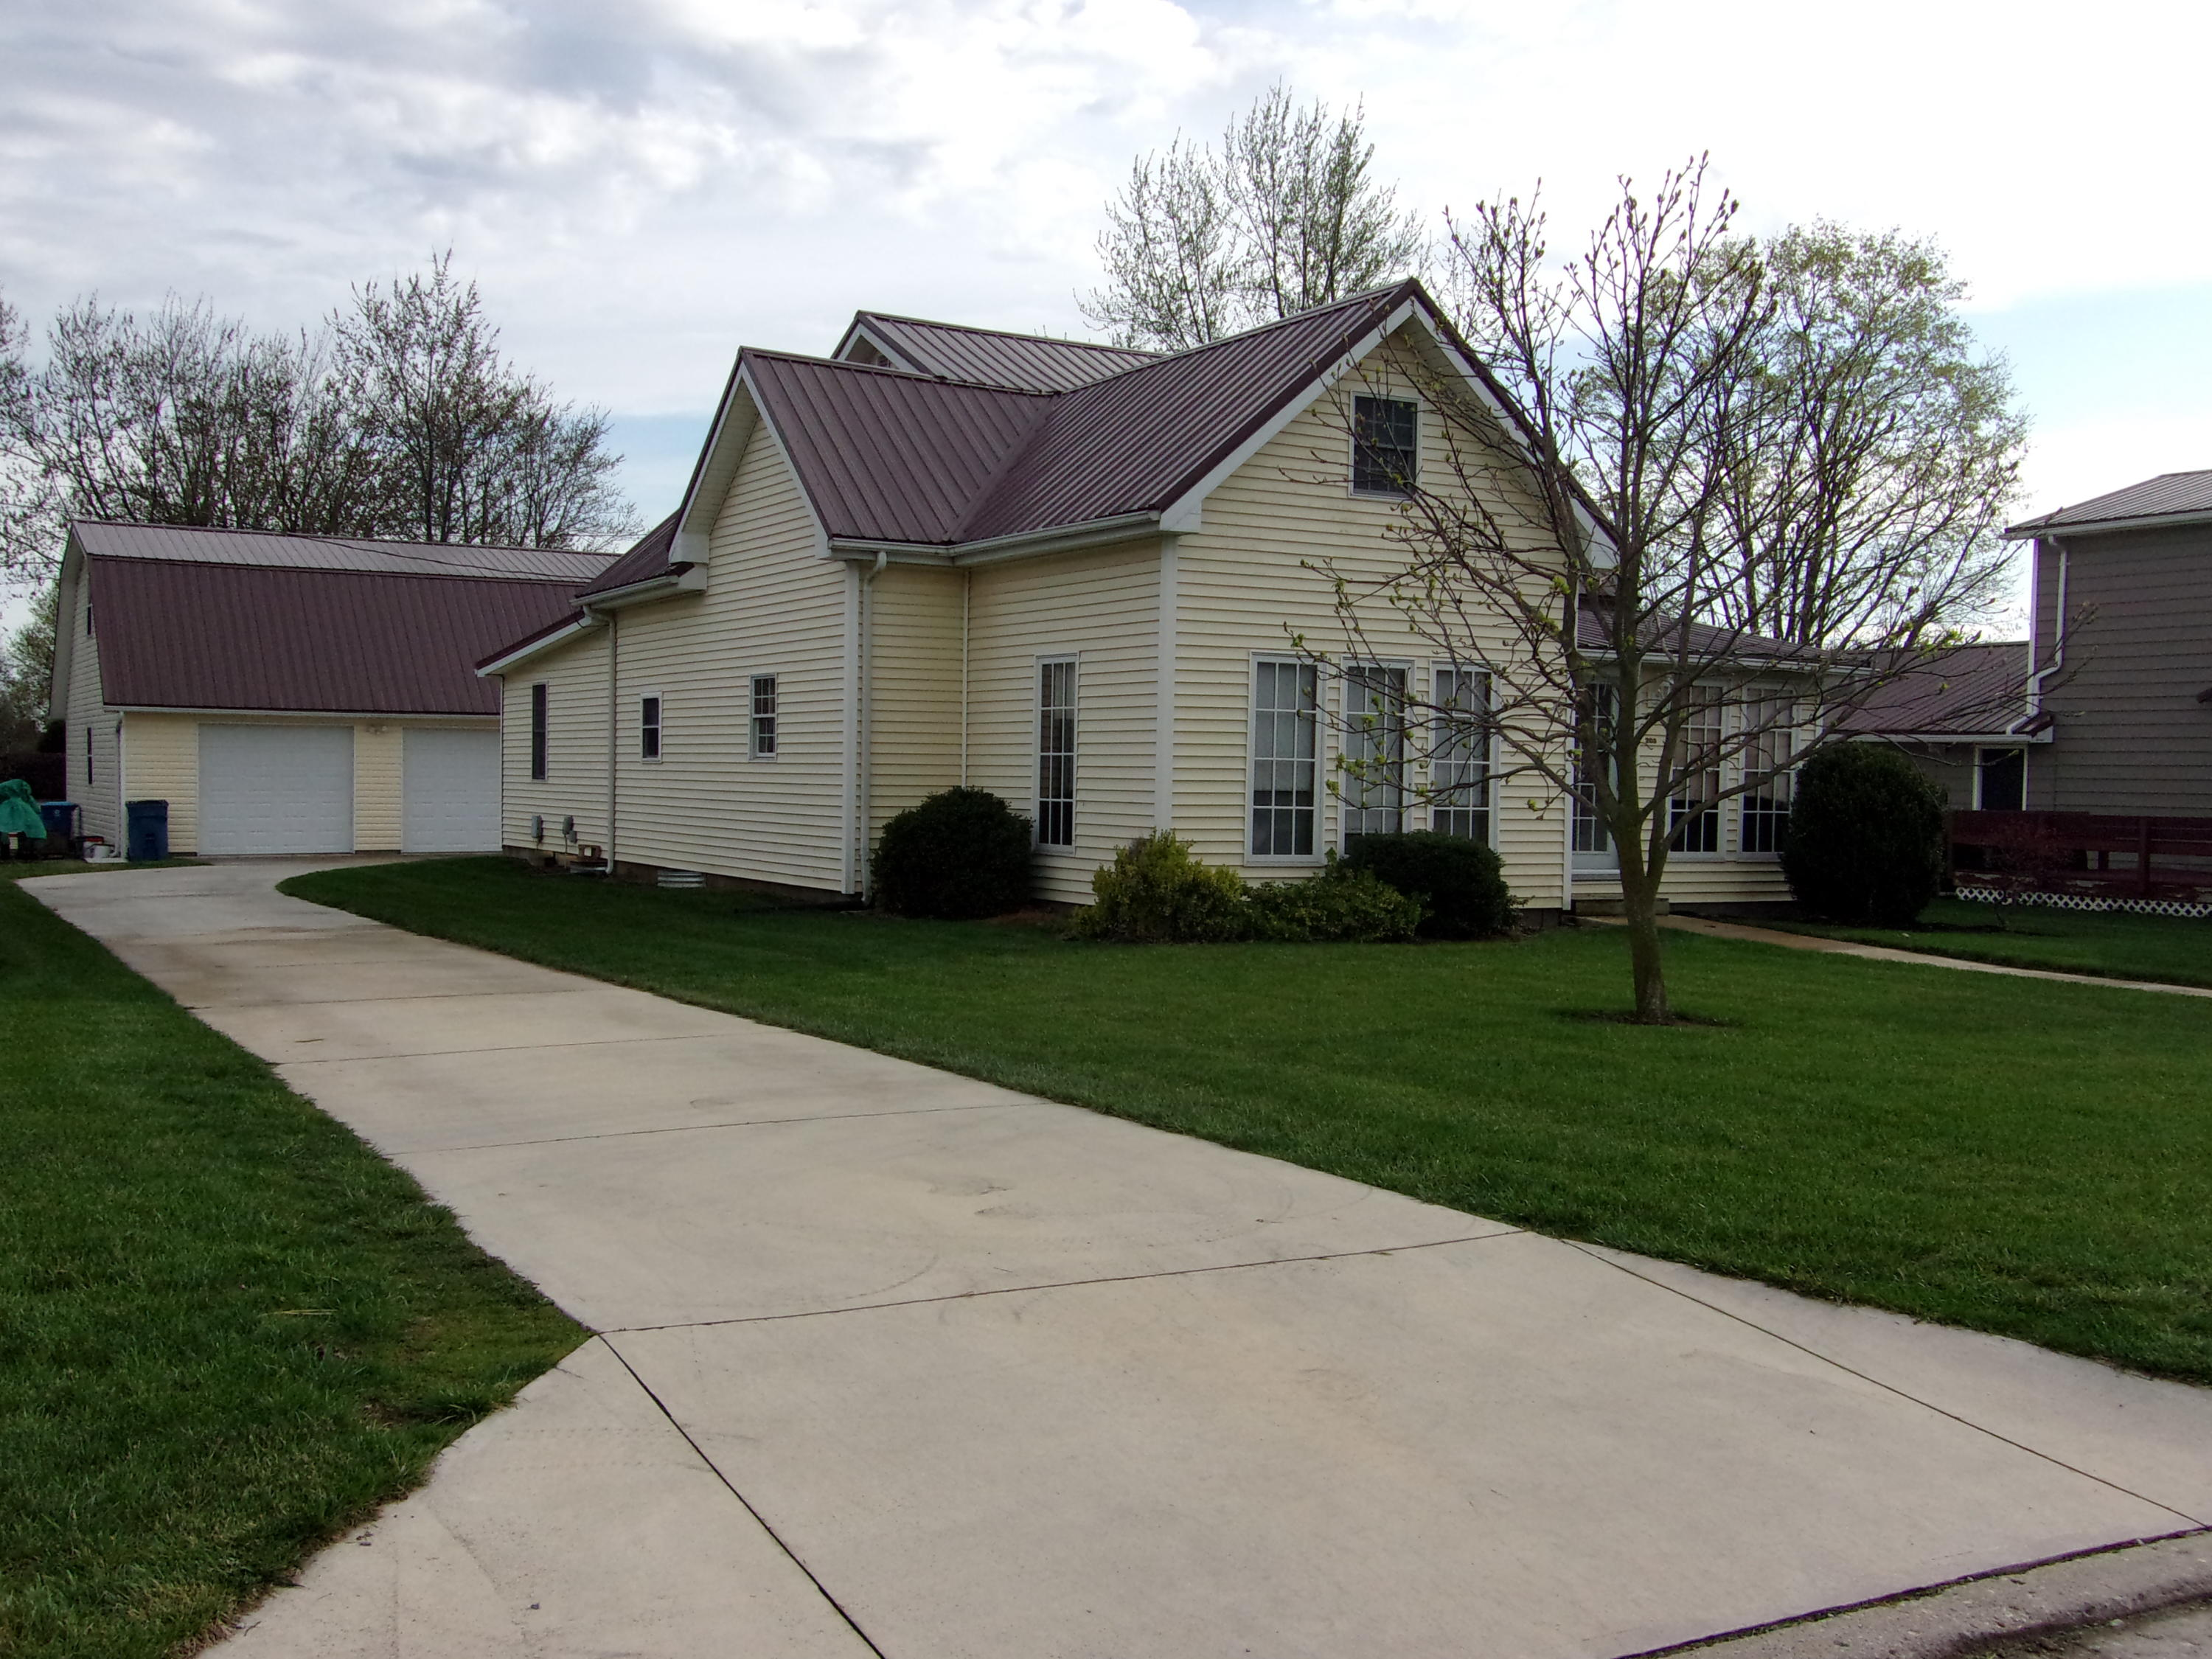 203 E South Street Property Photo - Botkins, OH real estate listing